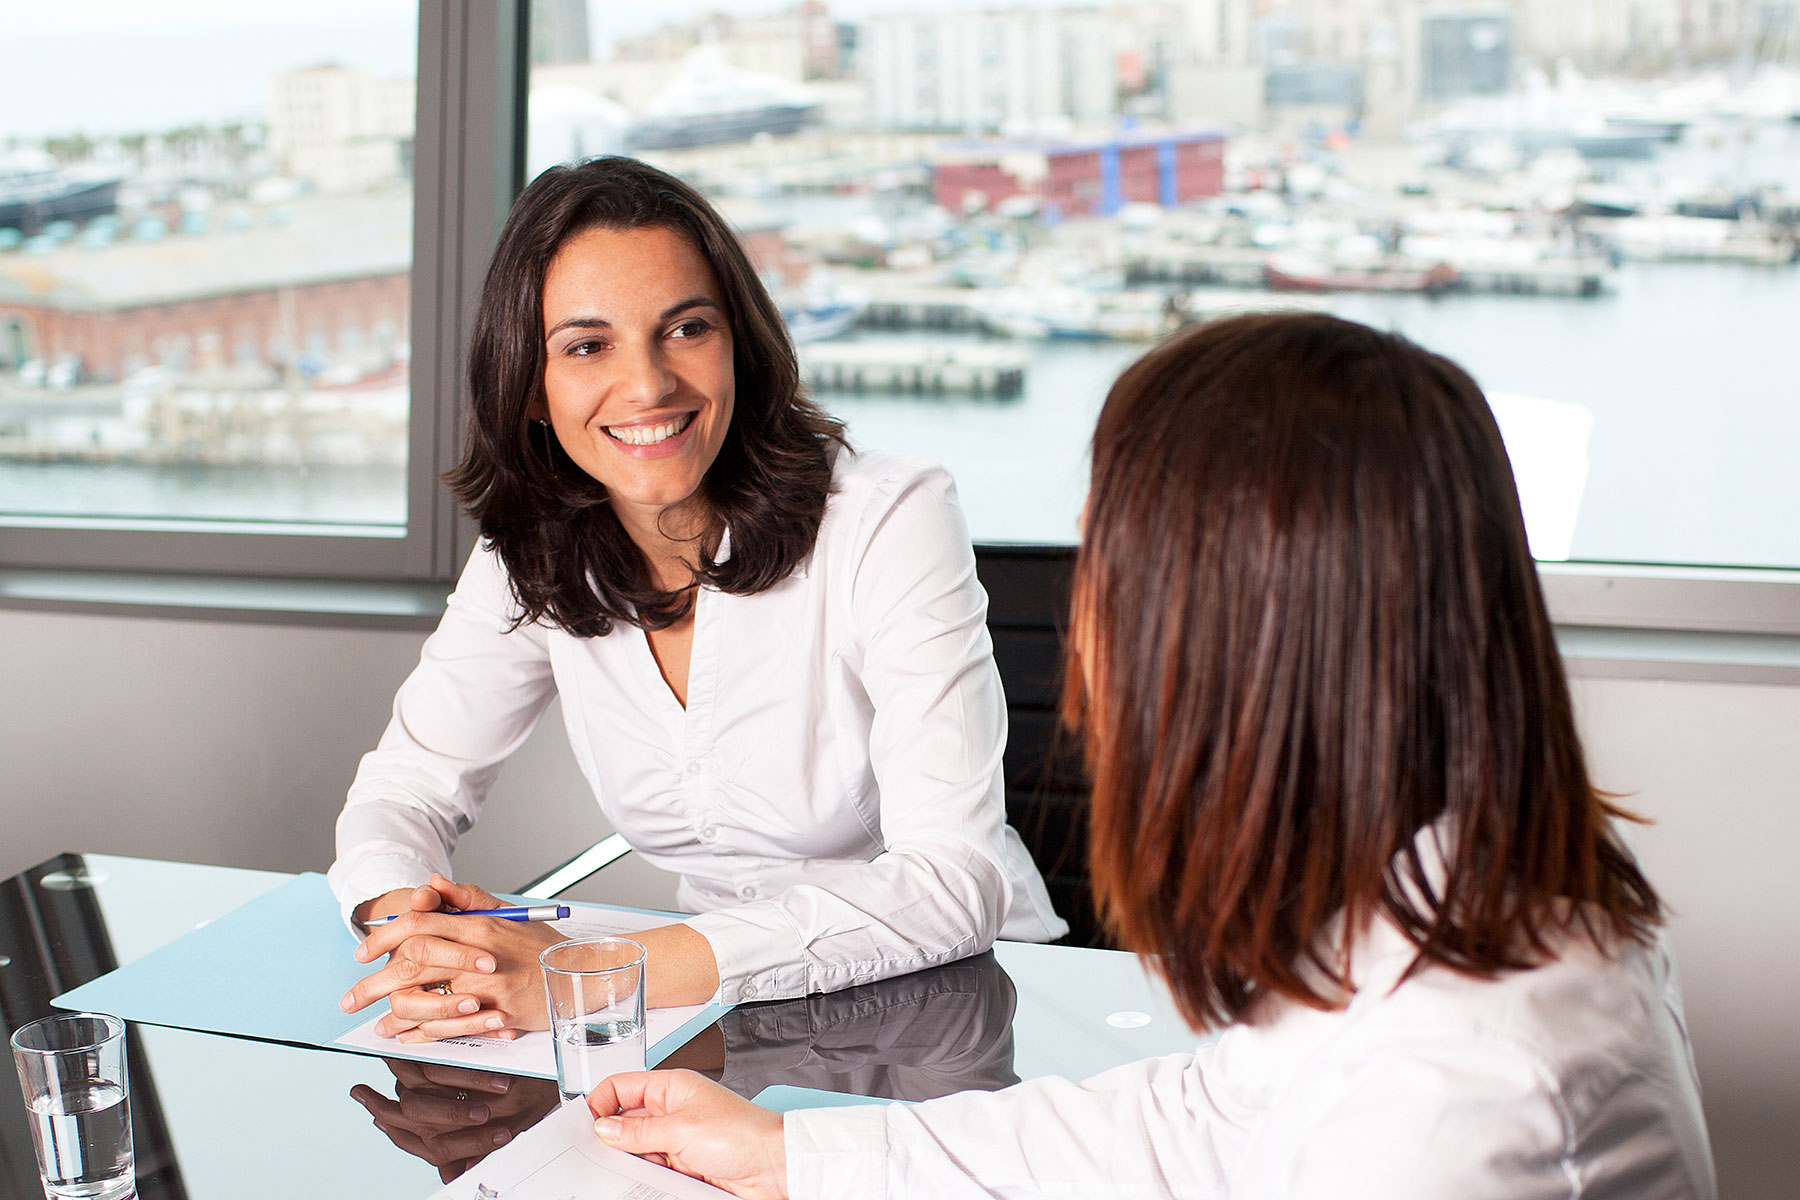 resume tips 5 resume red flags the career experts